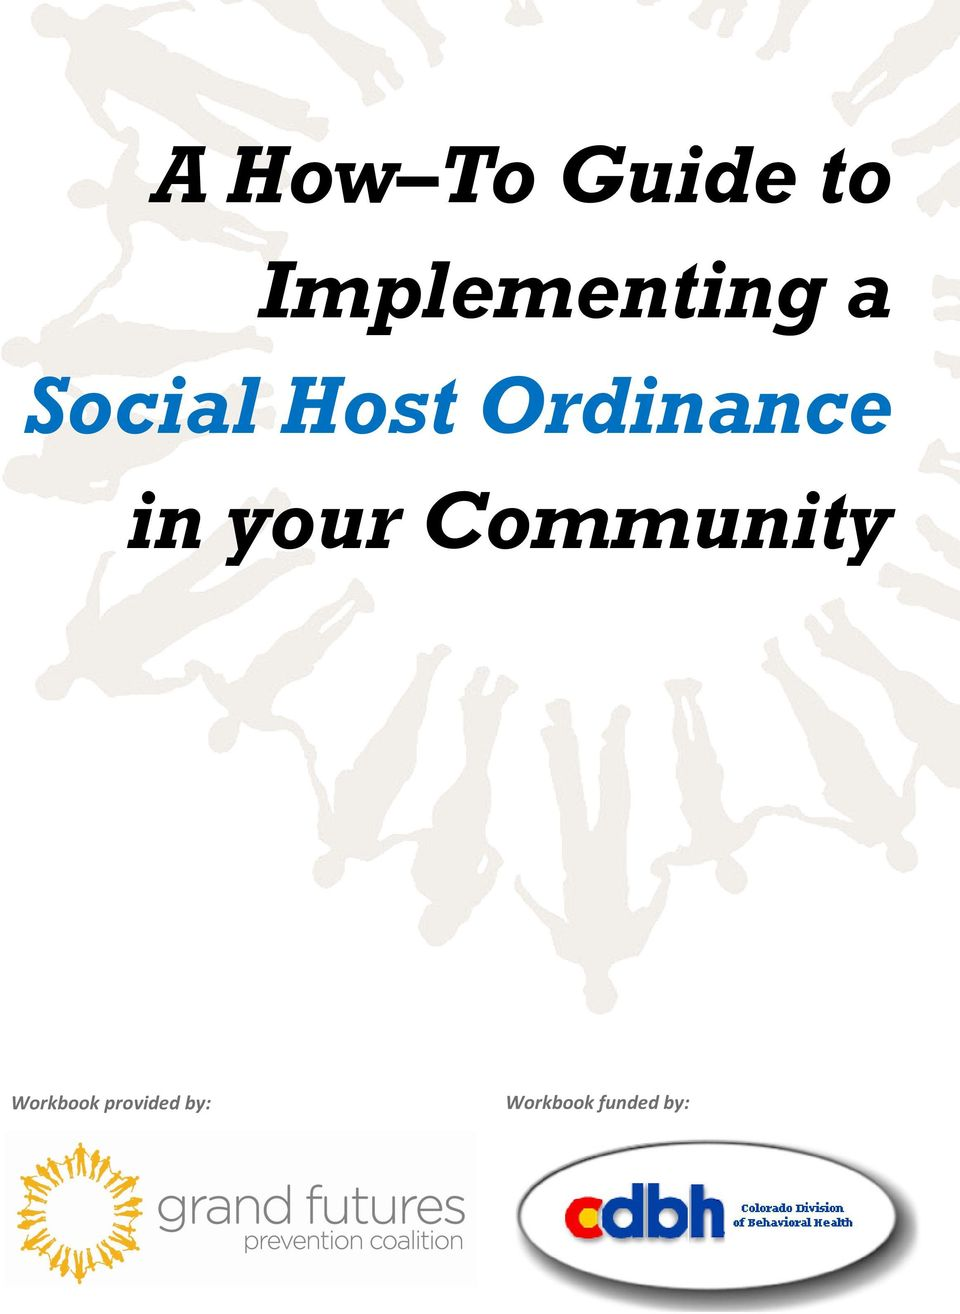 Ordinance in your Community